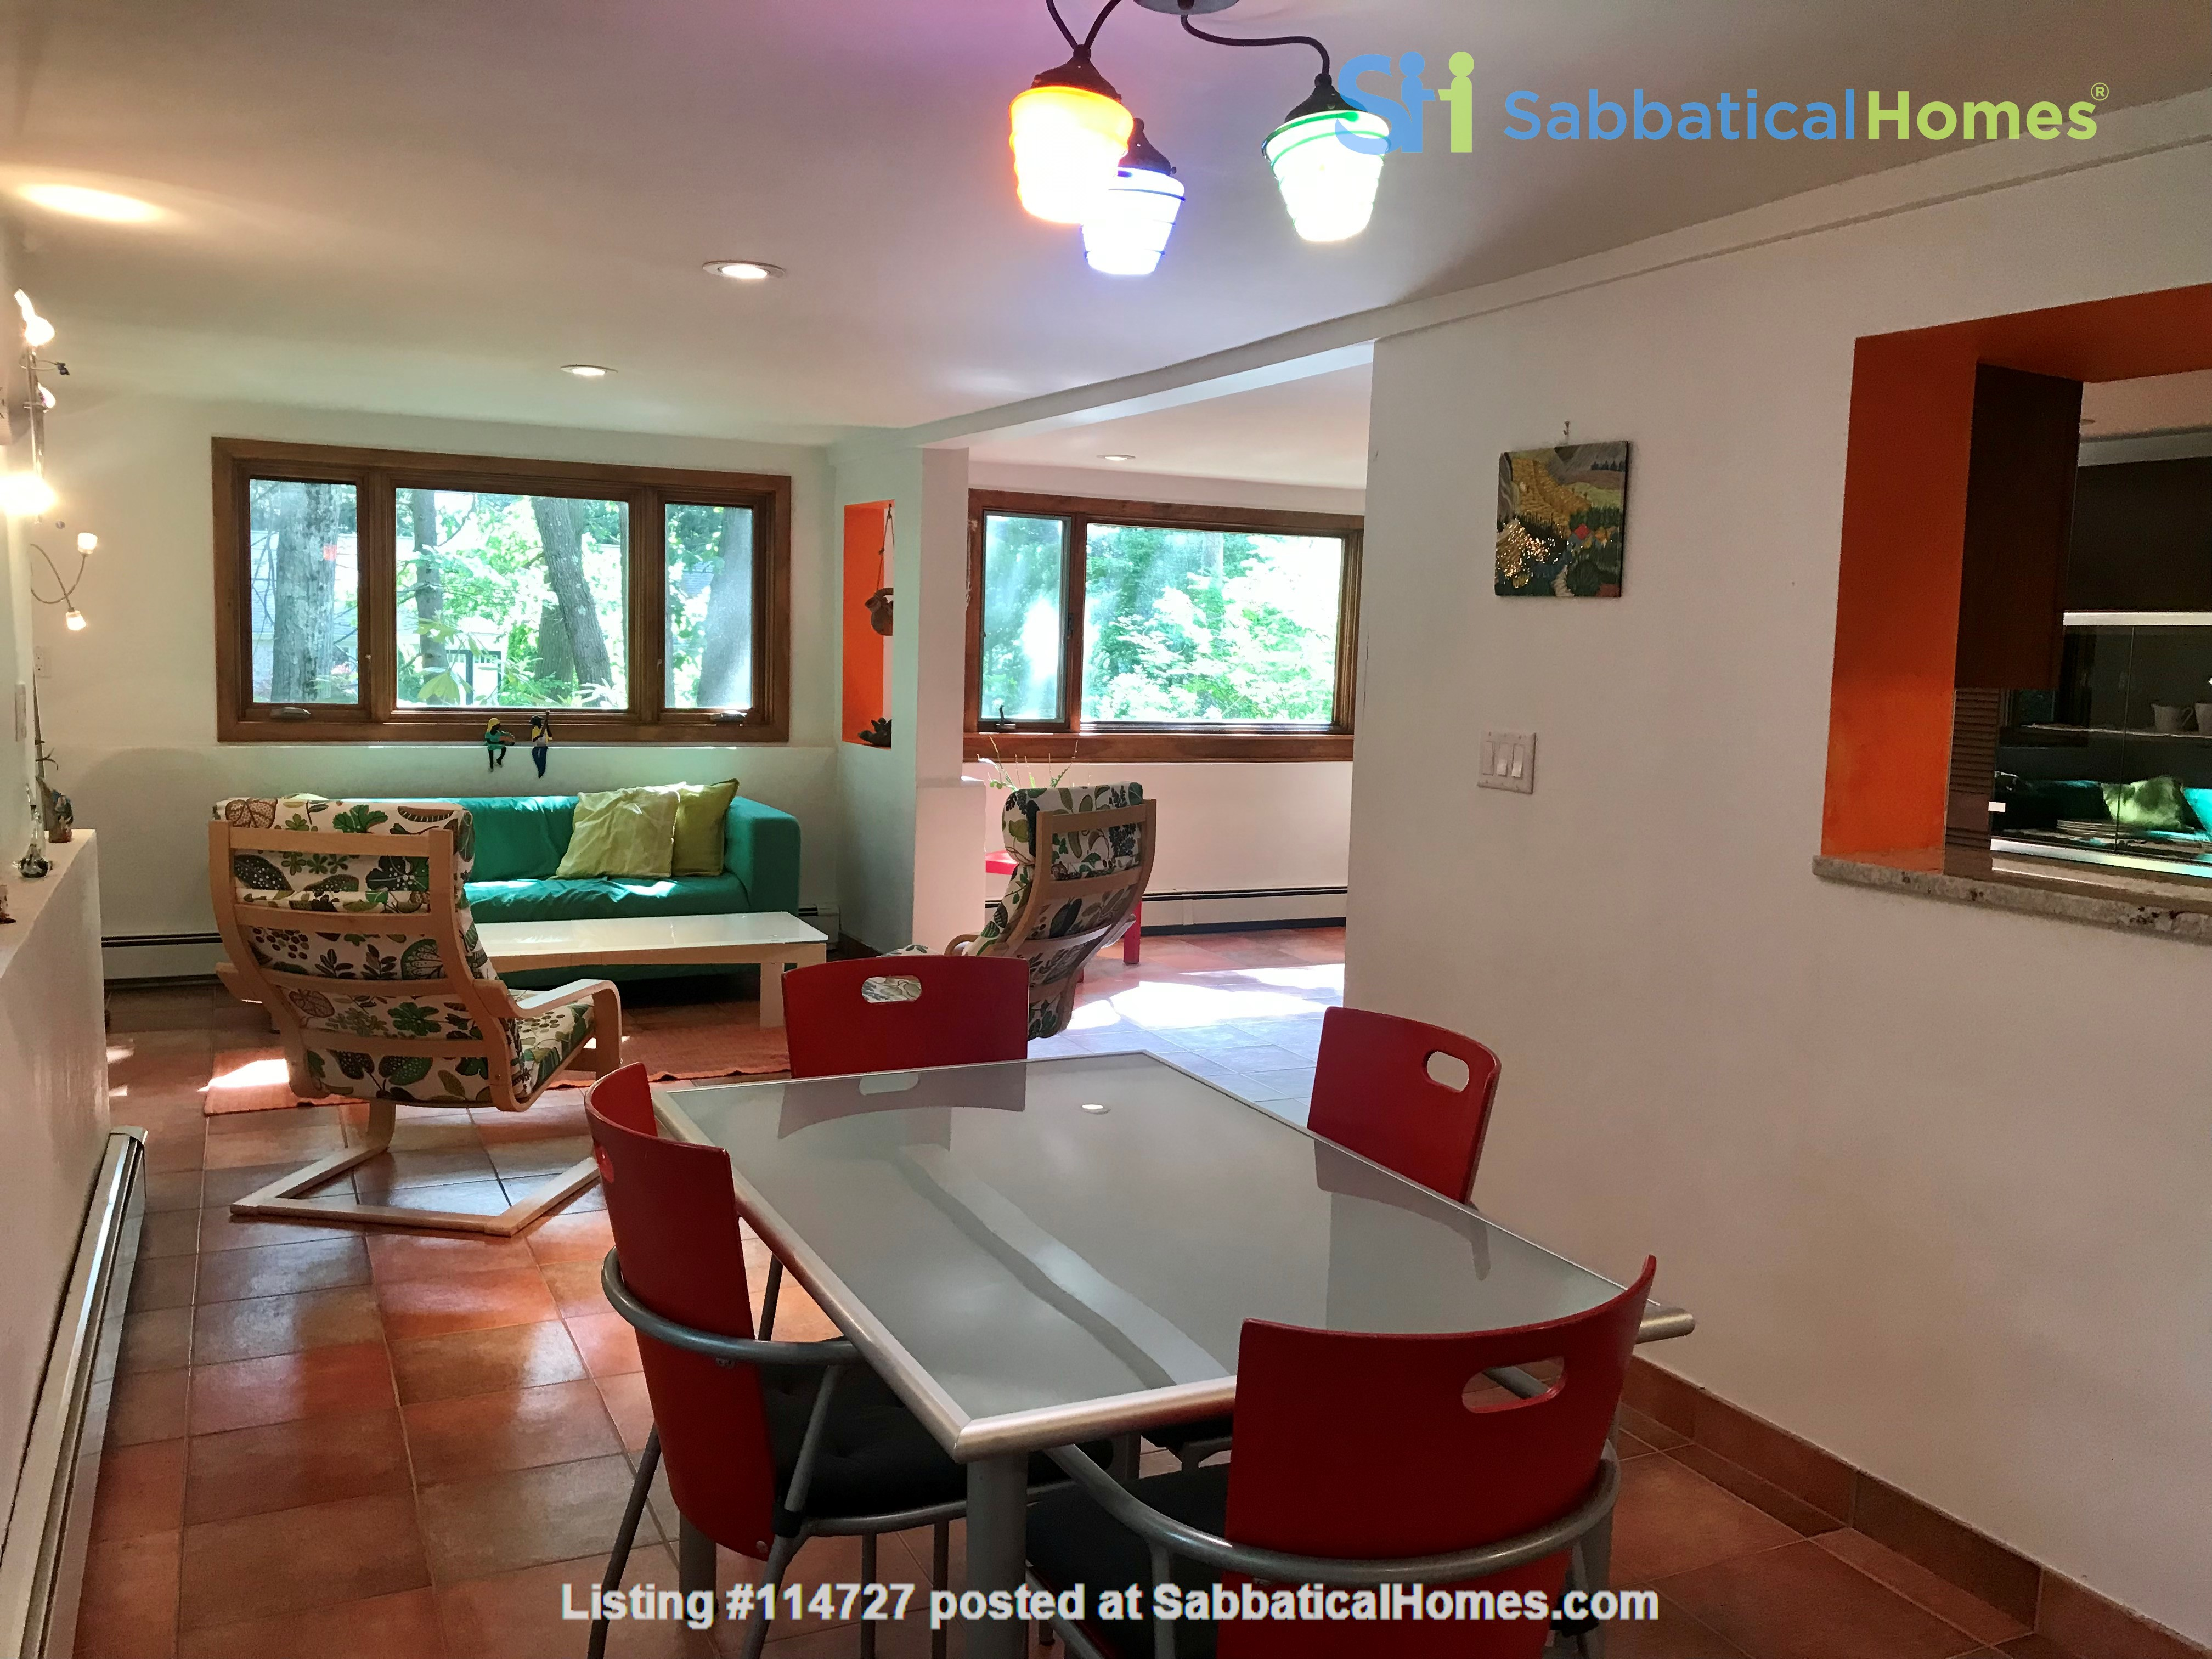 Newly furn &built 2 BR 1025 sq ft apt w/utlts in lux home in Winchester, Ma Home Rental in Winchester, Massachusetts, United States 1